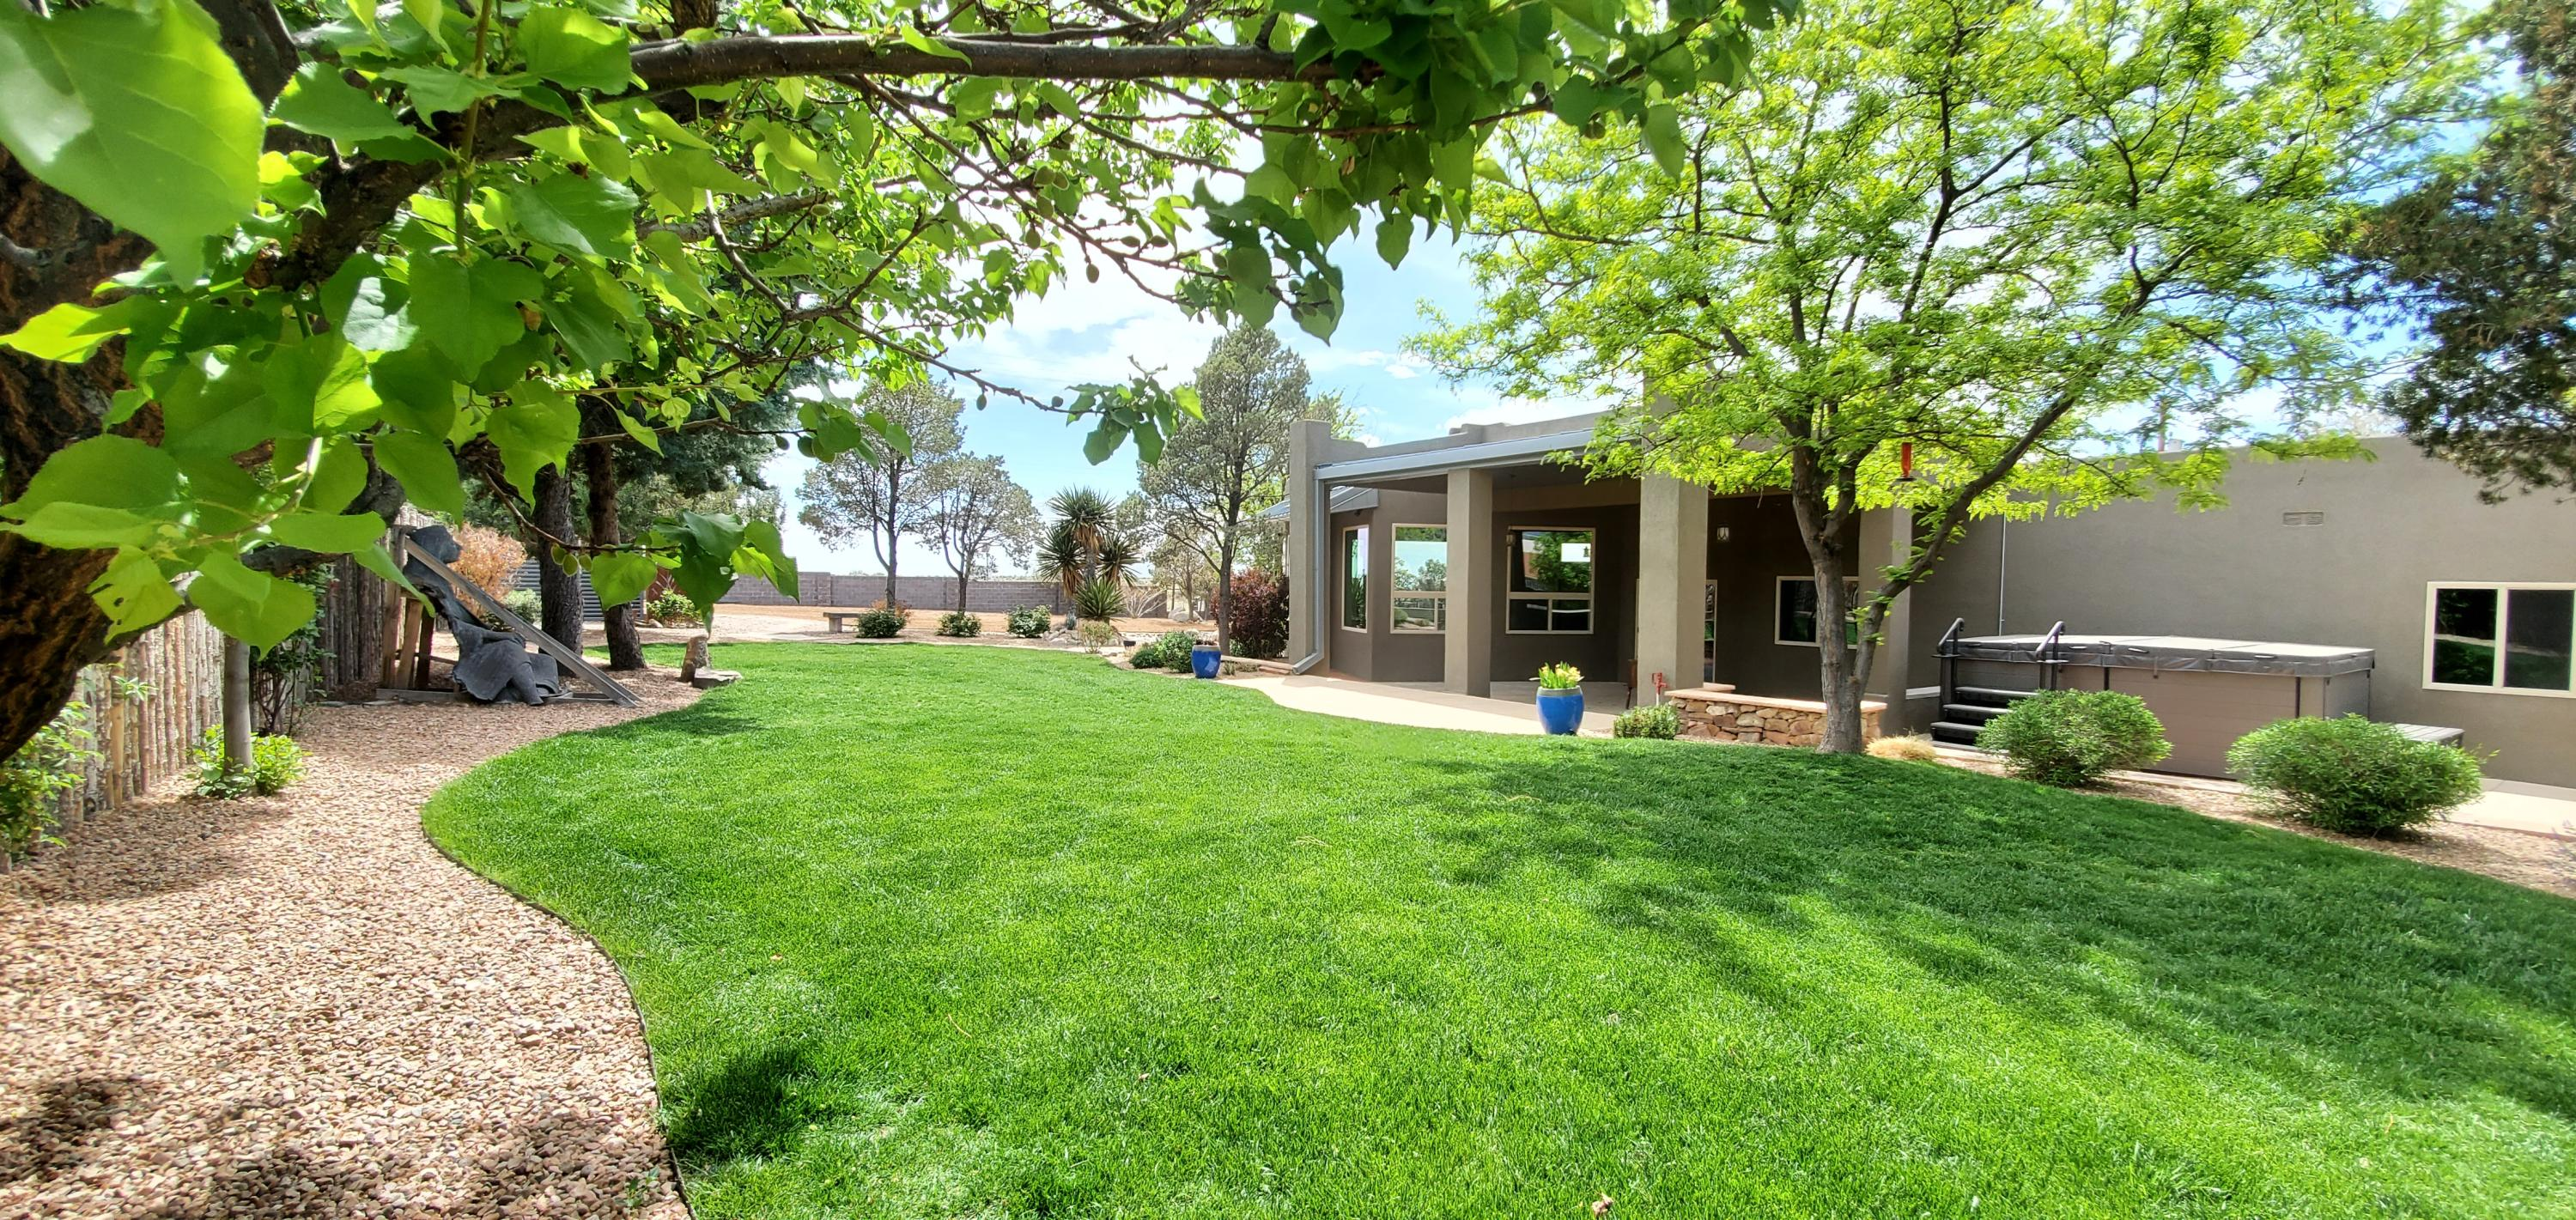 12301 SAN ANTONIO Drive NE Property Photo - Albuquerque, NM real estate listing